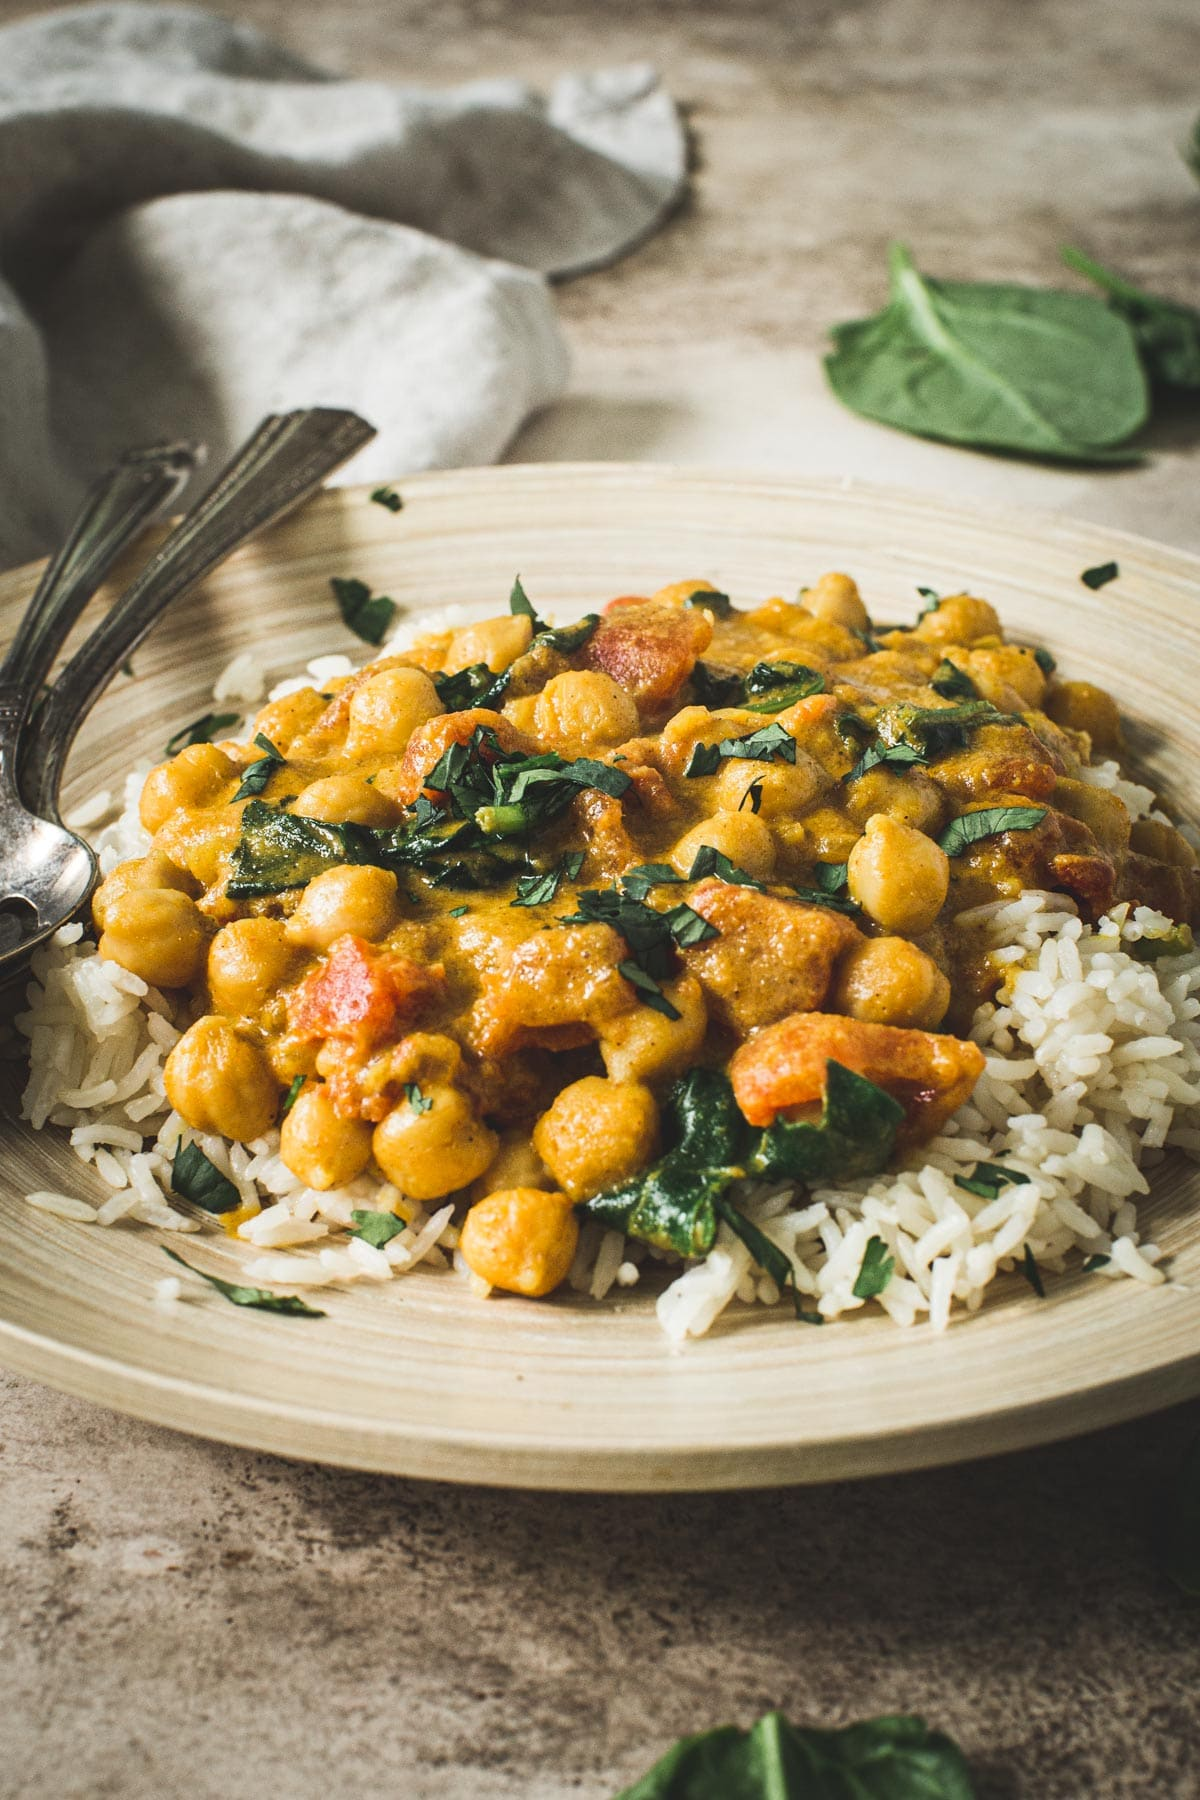 Chickpea spinach curry topped with cilantro and served over rice.